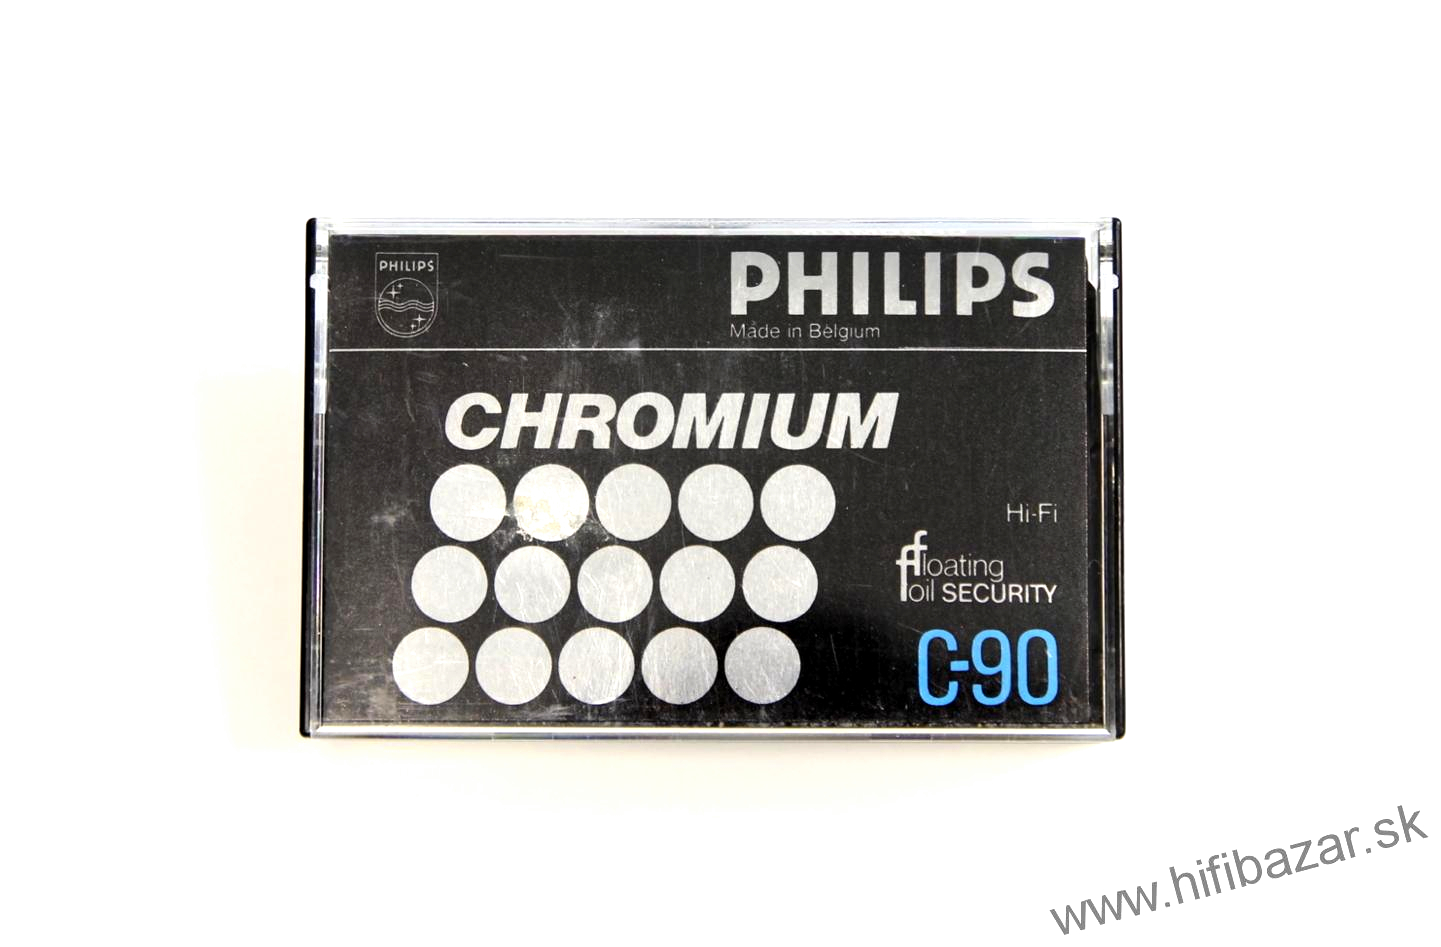 PHILIPS CHROMIUM C-90